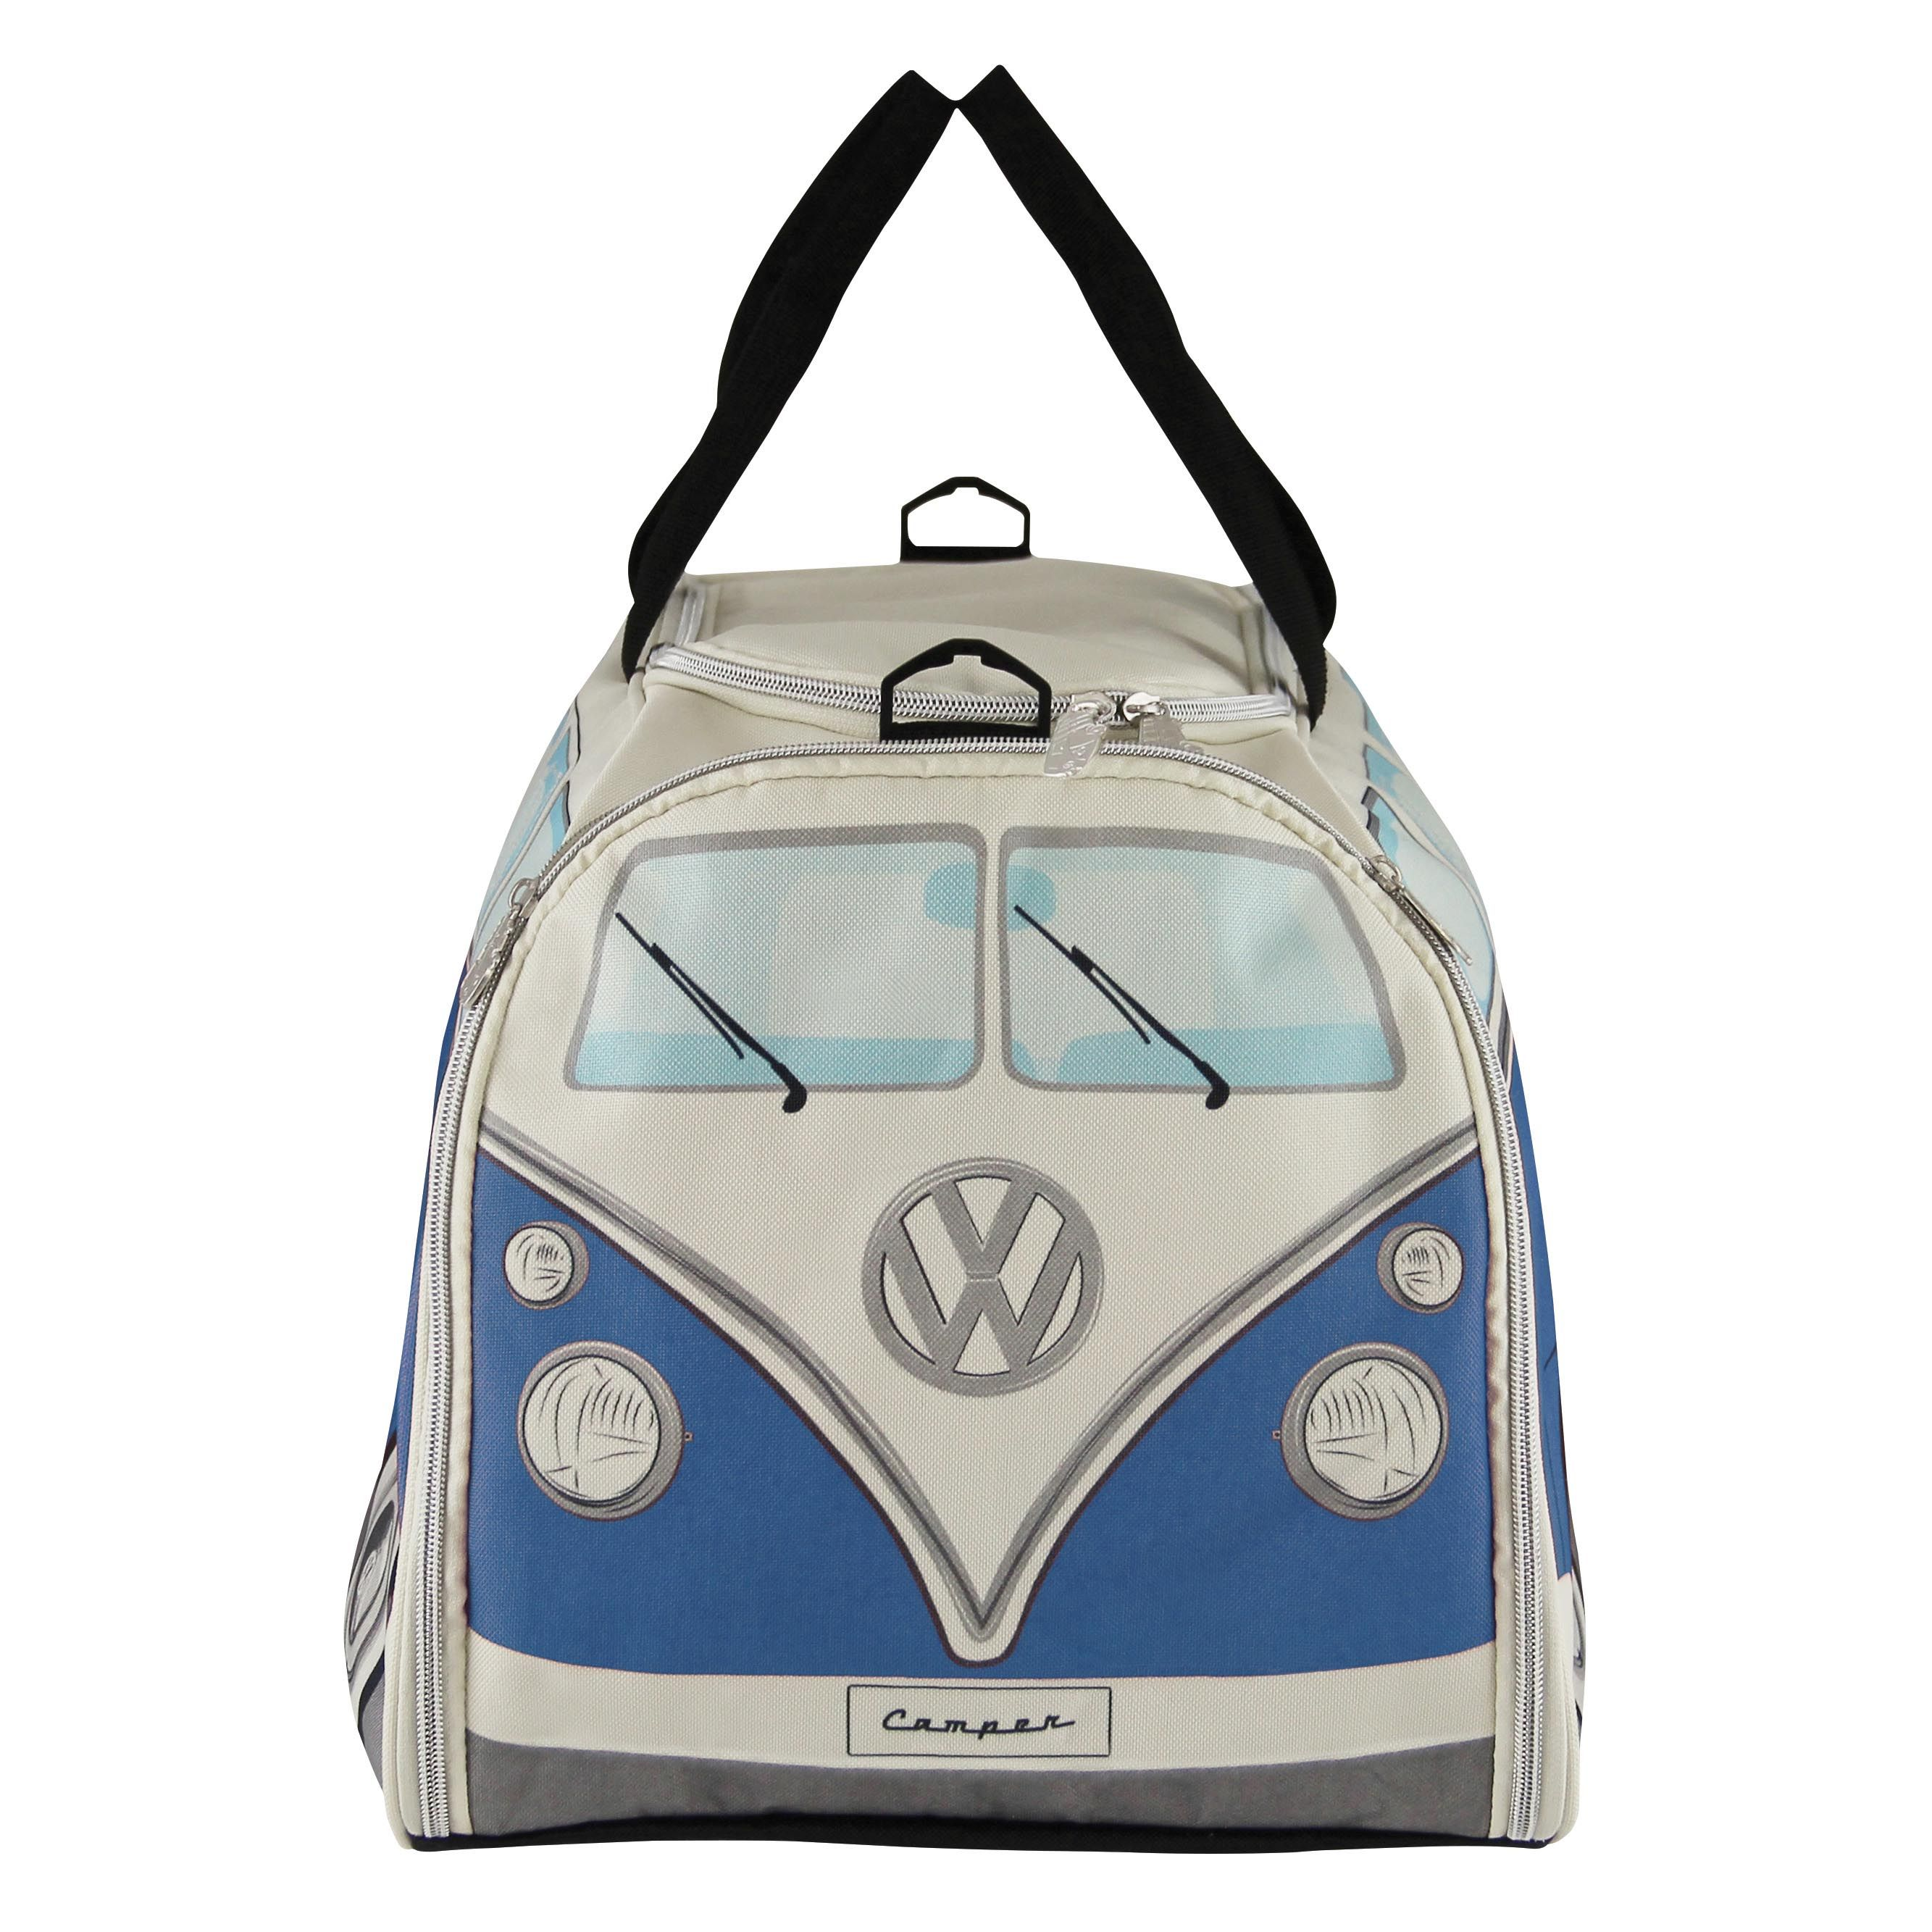 Sport and travel bag, shown here in blue feature classic and VW T1 Bus design. With both hand and shoulder straps, a waterproof inner lining and a flexible base so it may fit into a small locker. Includes separate shoe and wet compartment. #VWStyle #TravelBag. Distributed by Enesco VW Official Licensed Product, ©2015 Enesco Ltd.